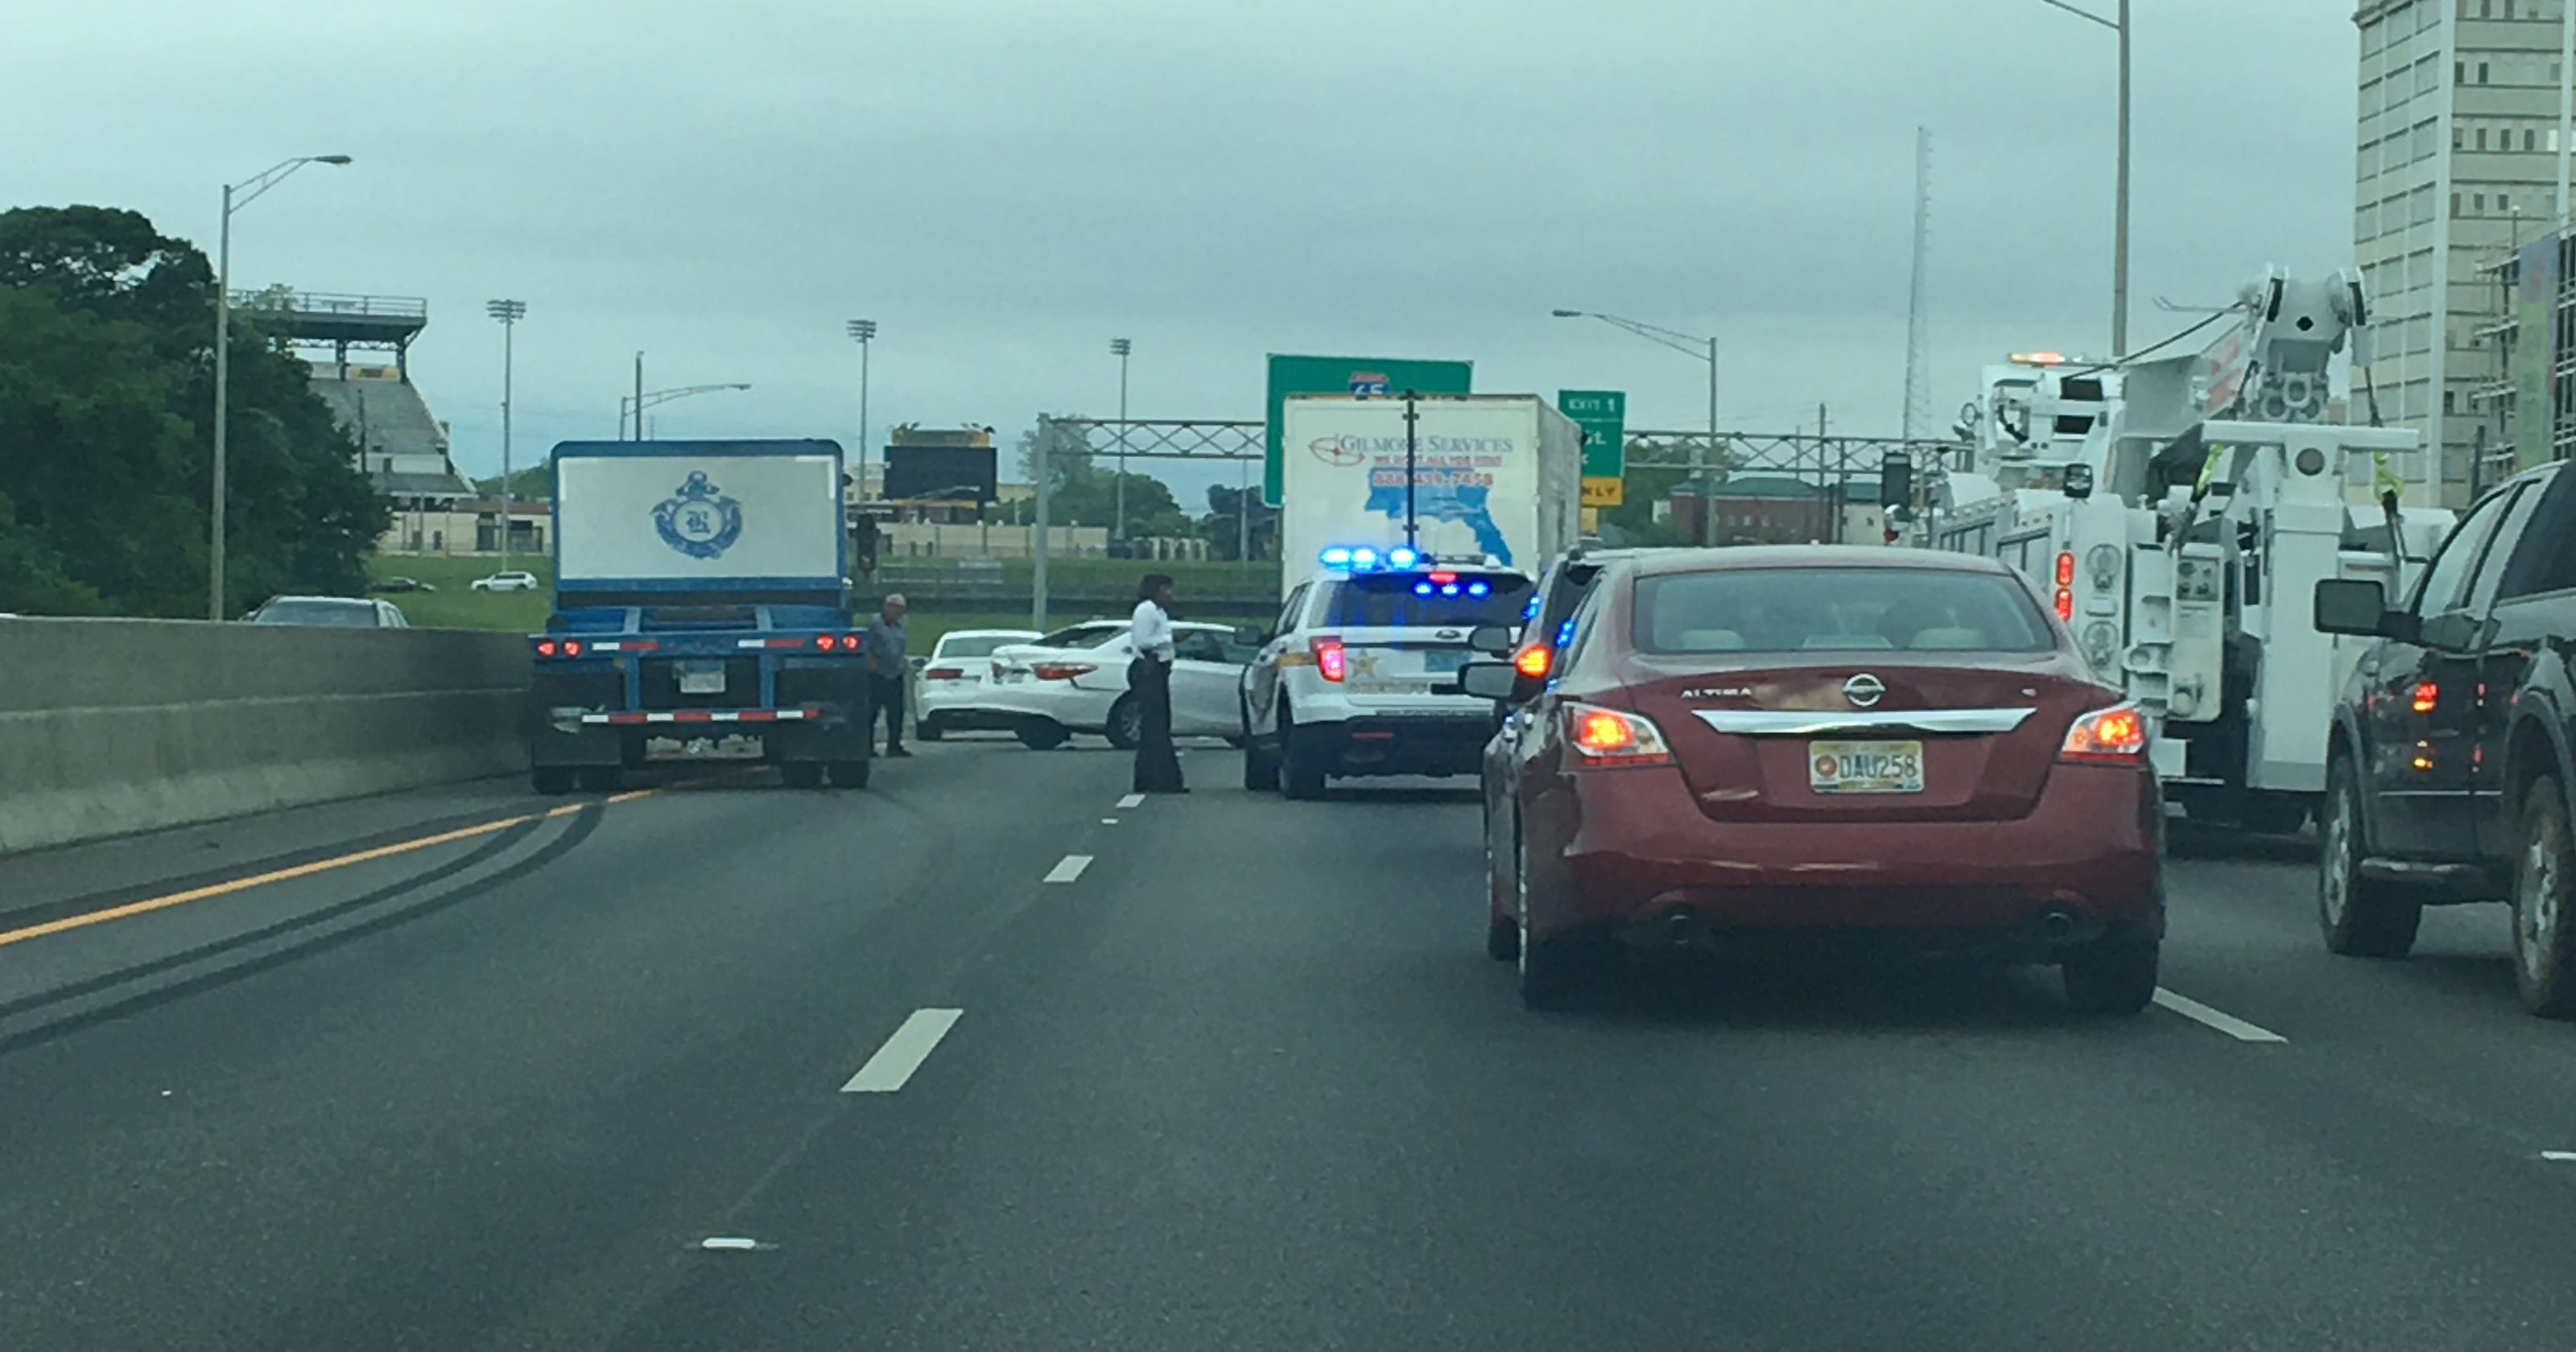 Traffic alert: accident on I-85 at Ann Street cleared